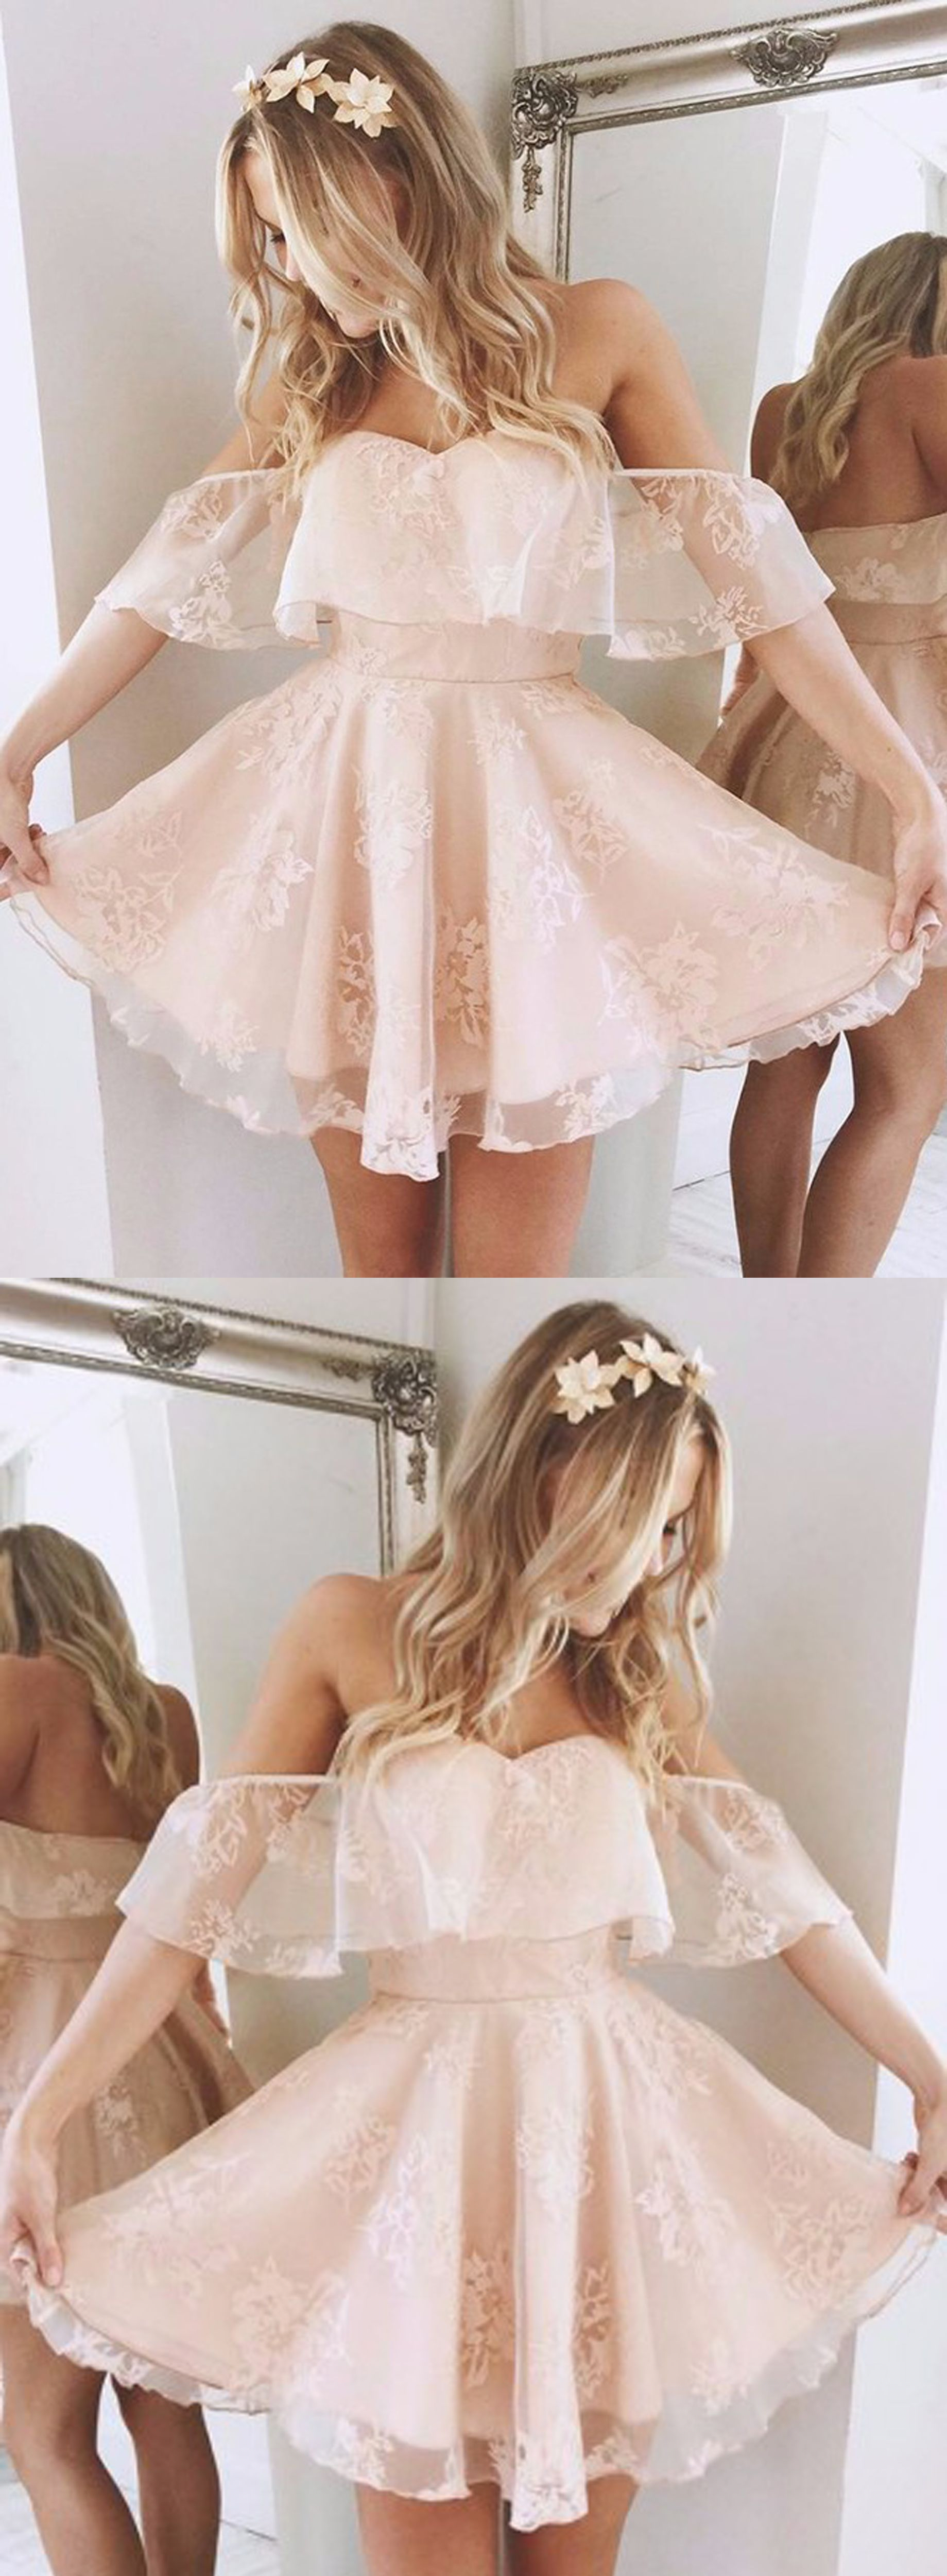 91256d0cff7 A-Line Off-the-Shoulder Short Pearl Pink Lace Homecoming Dress